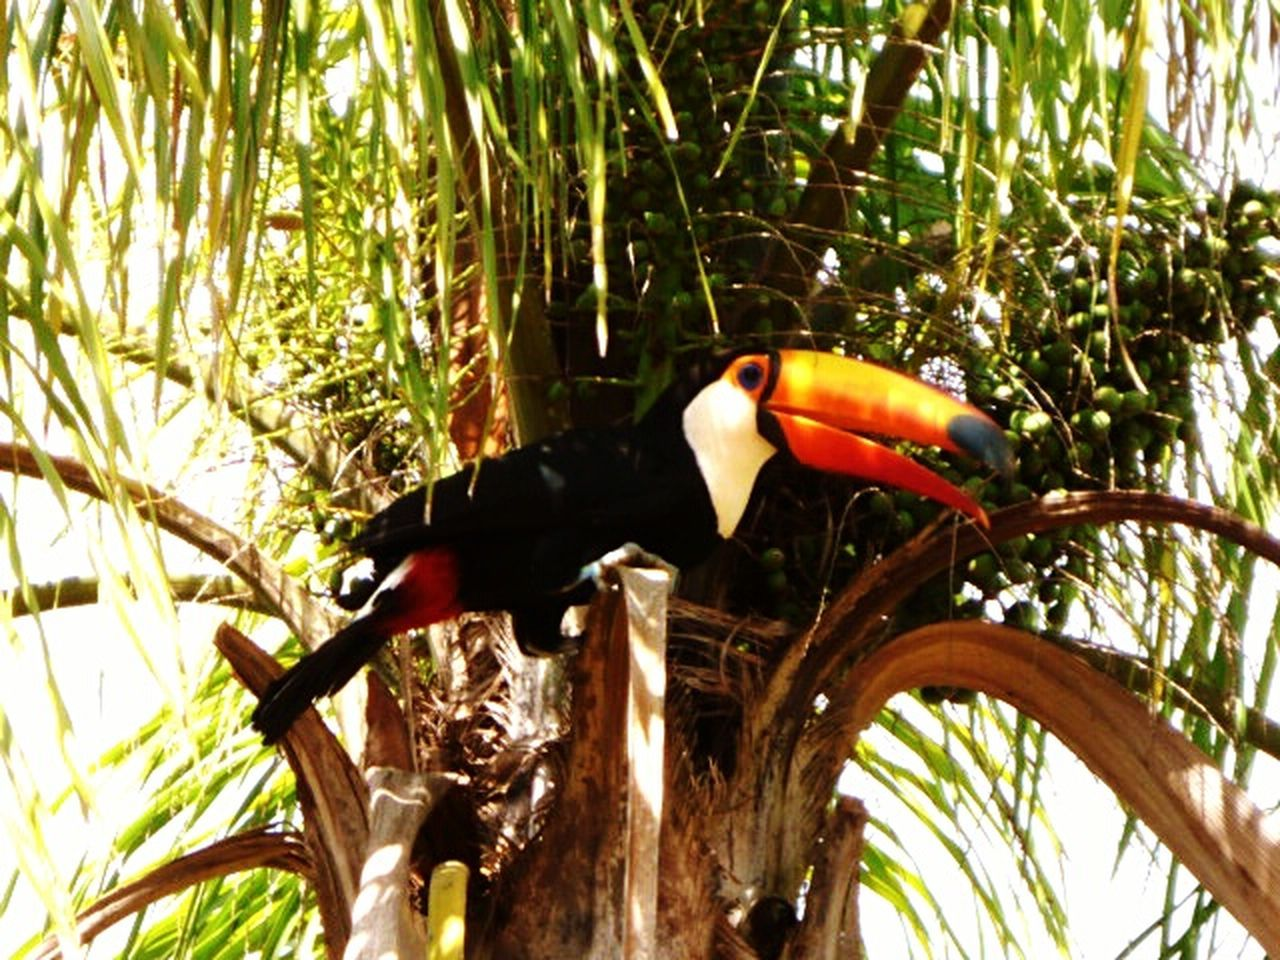 Animal Themes Tree Animals In The Wild Nature One Animal Bird Branch No People Day Outdoors Parrot Tucan Capture The Moment